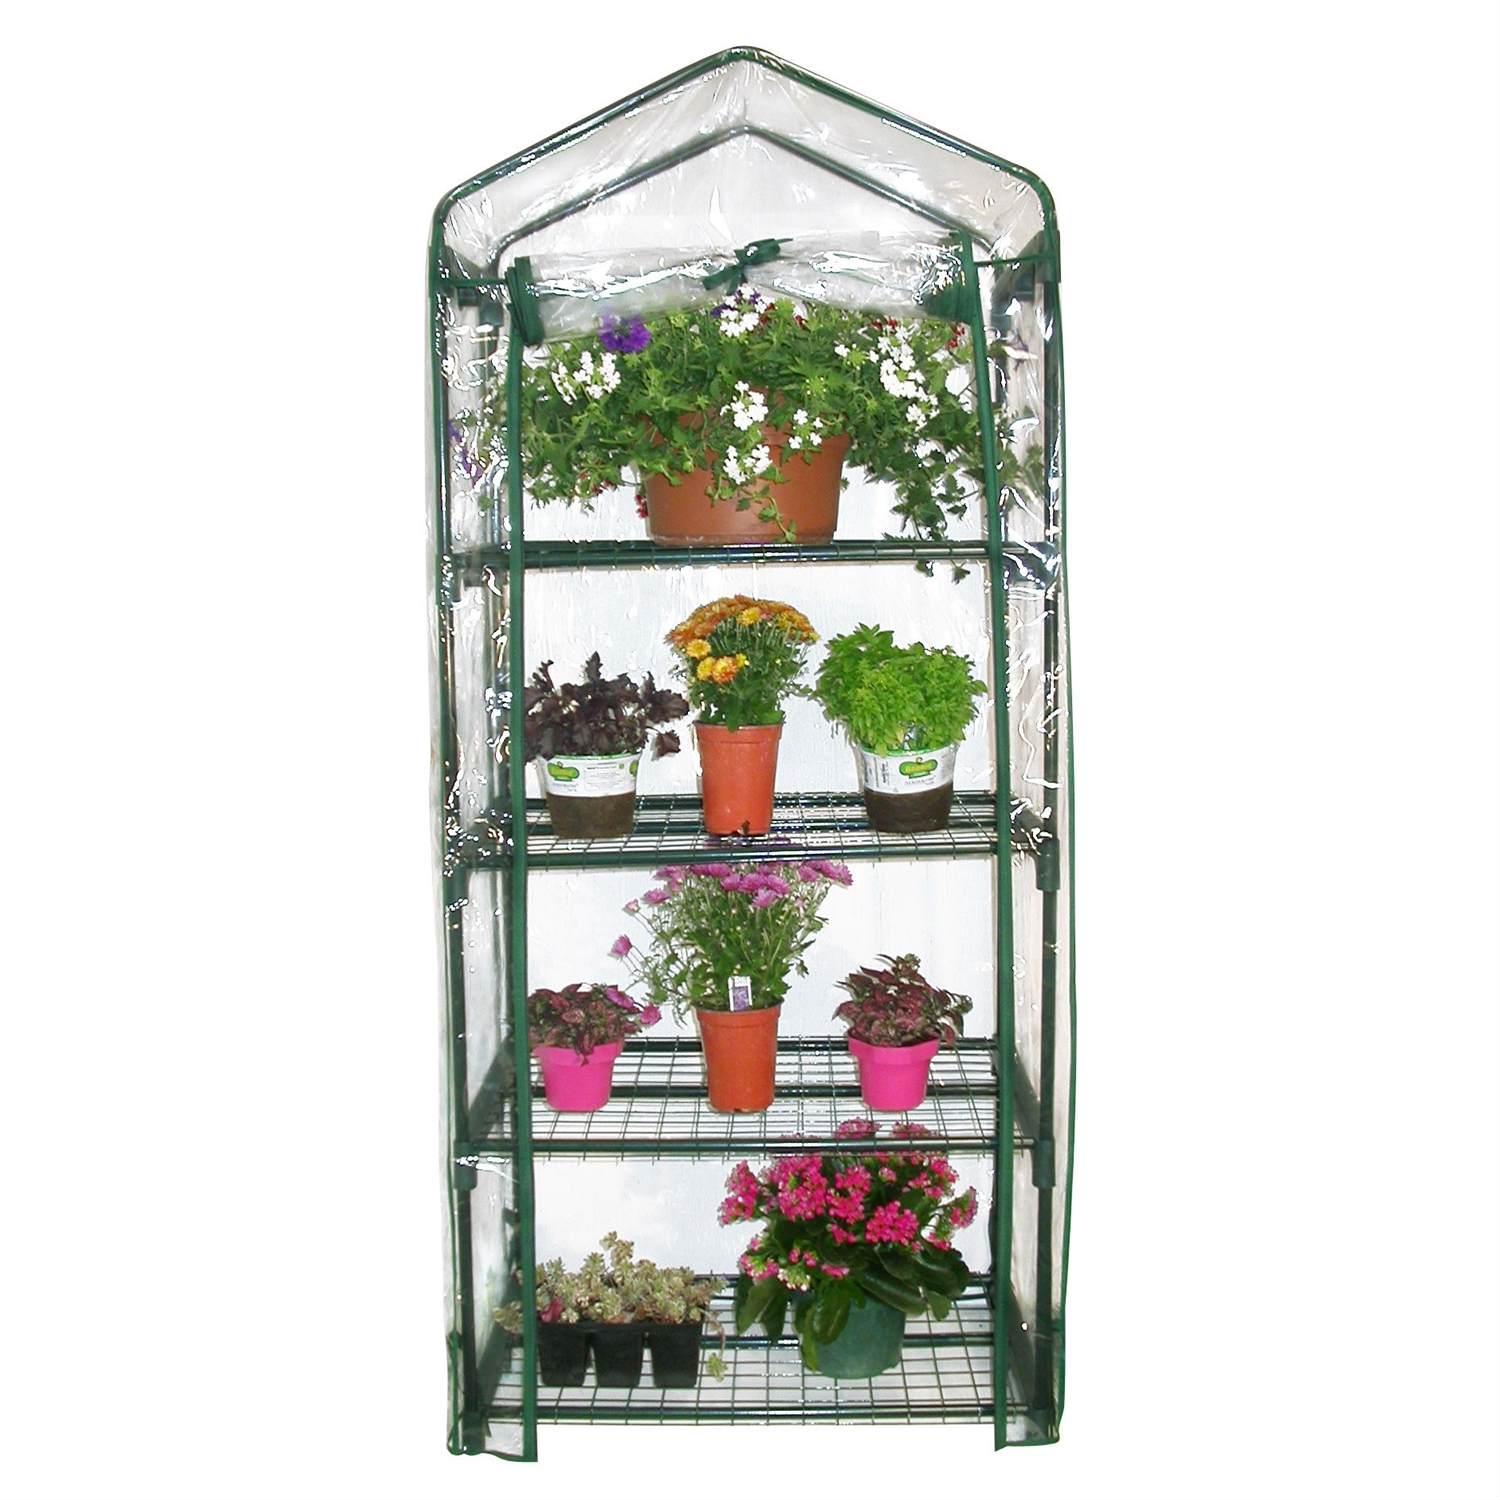 4-Tier Growing Rack Planter Stand Greenhouse with Steel Frame, A4TGR6335 :  This 4-Tier Growing Rack Planter Stand Greenhouse with Steel Frame would be a great addition to your home. It is ideal for extending your growing season and has a uv-treated plastic cover great for any climate. Perfect for your home or garden; Ideal for extending the growing season; Interlock components; Strength and durability; Steel mesh shelving provides ideal drainage and air circulation; Frame constructed of powder-coated steel.